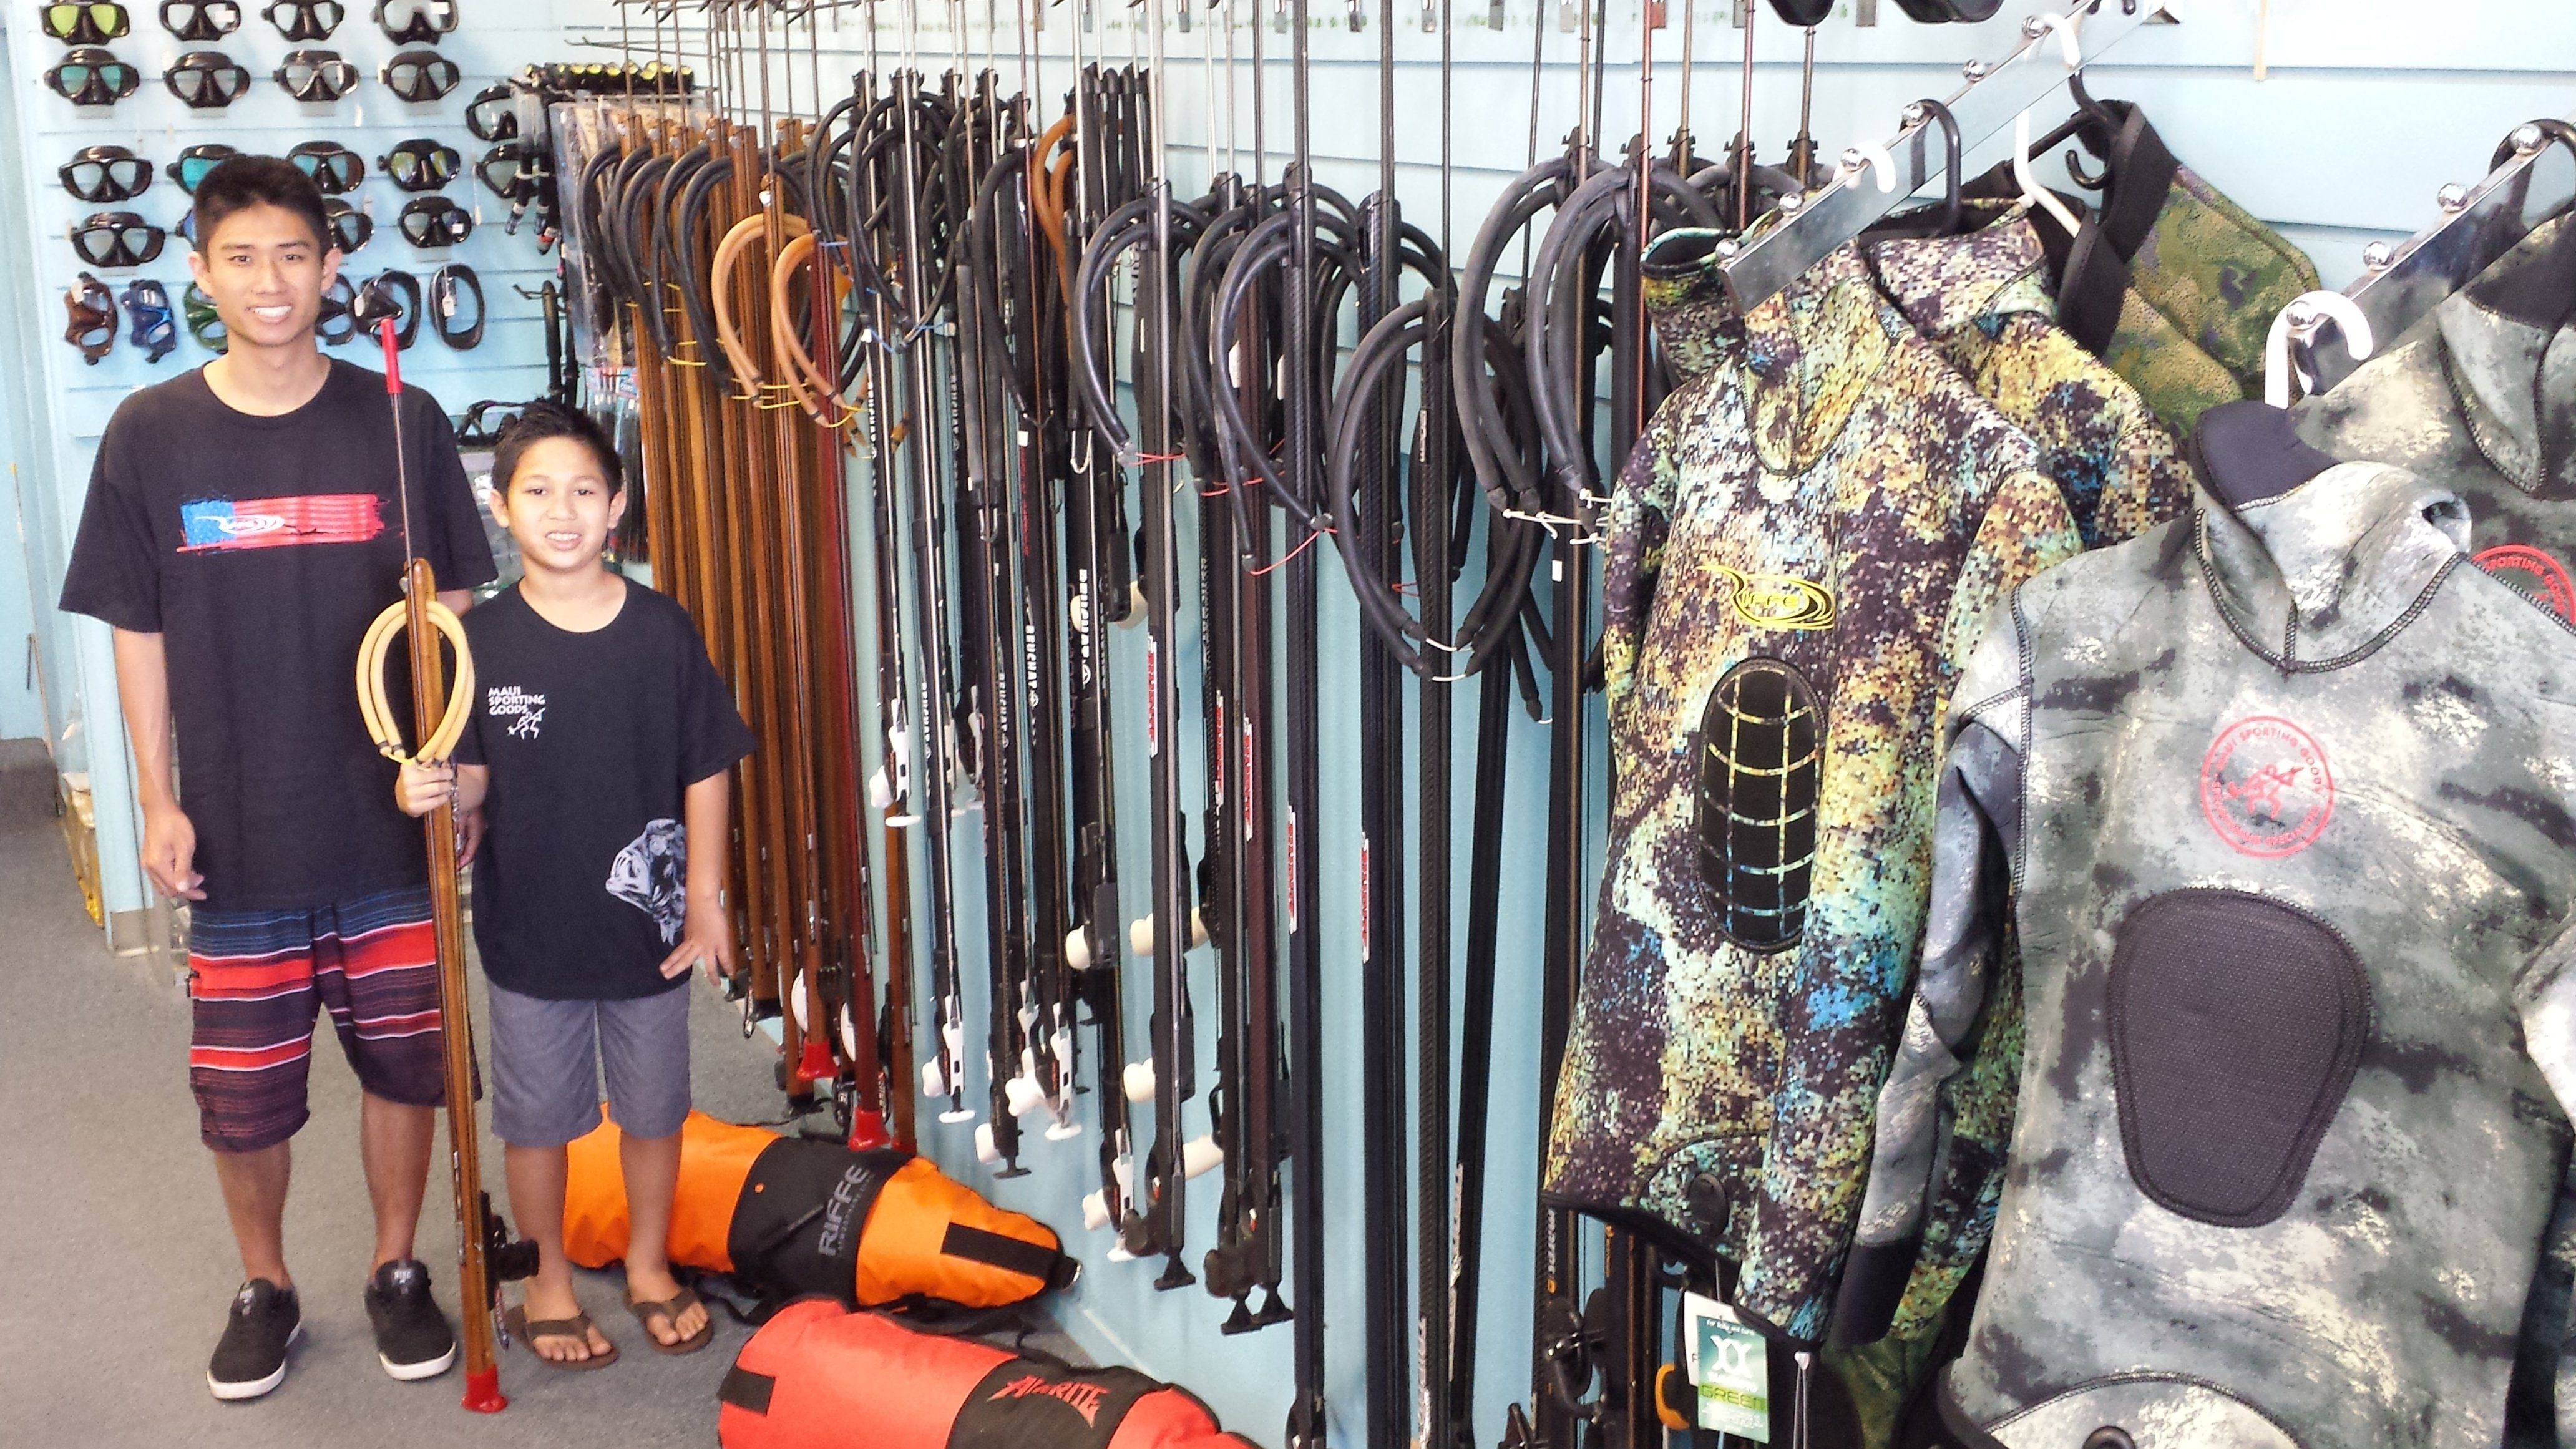 Diver with spear doing spearfishing in Honolulu, H